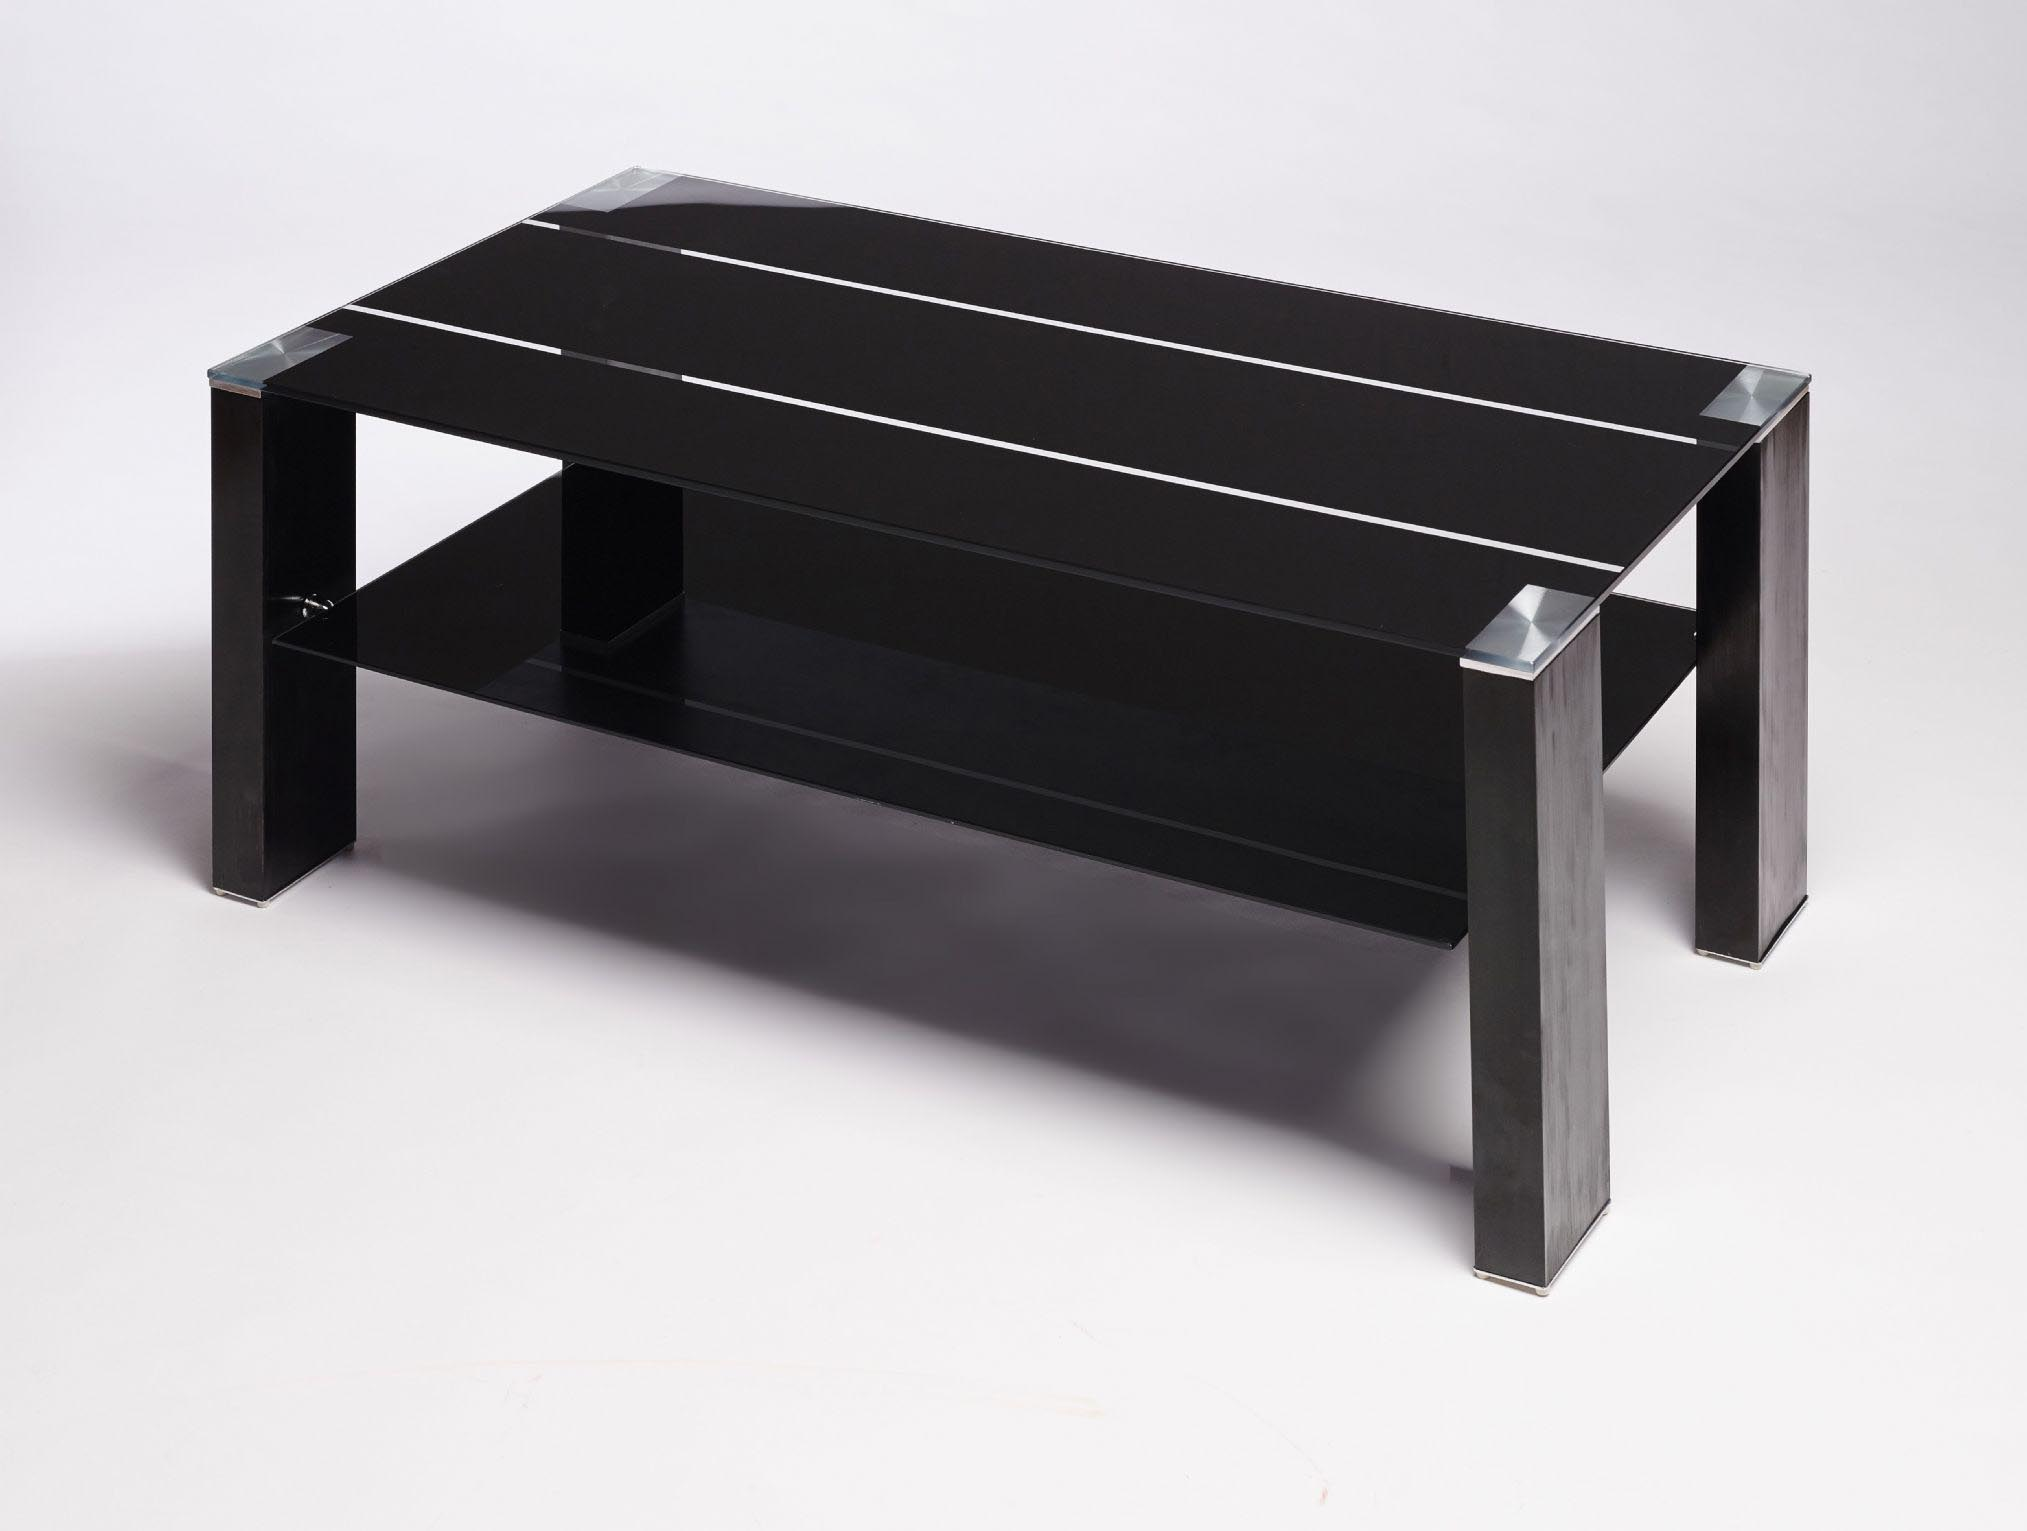 Black Coffee Table Modern Black Glass Coffee Table Contemporary Modern Retro